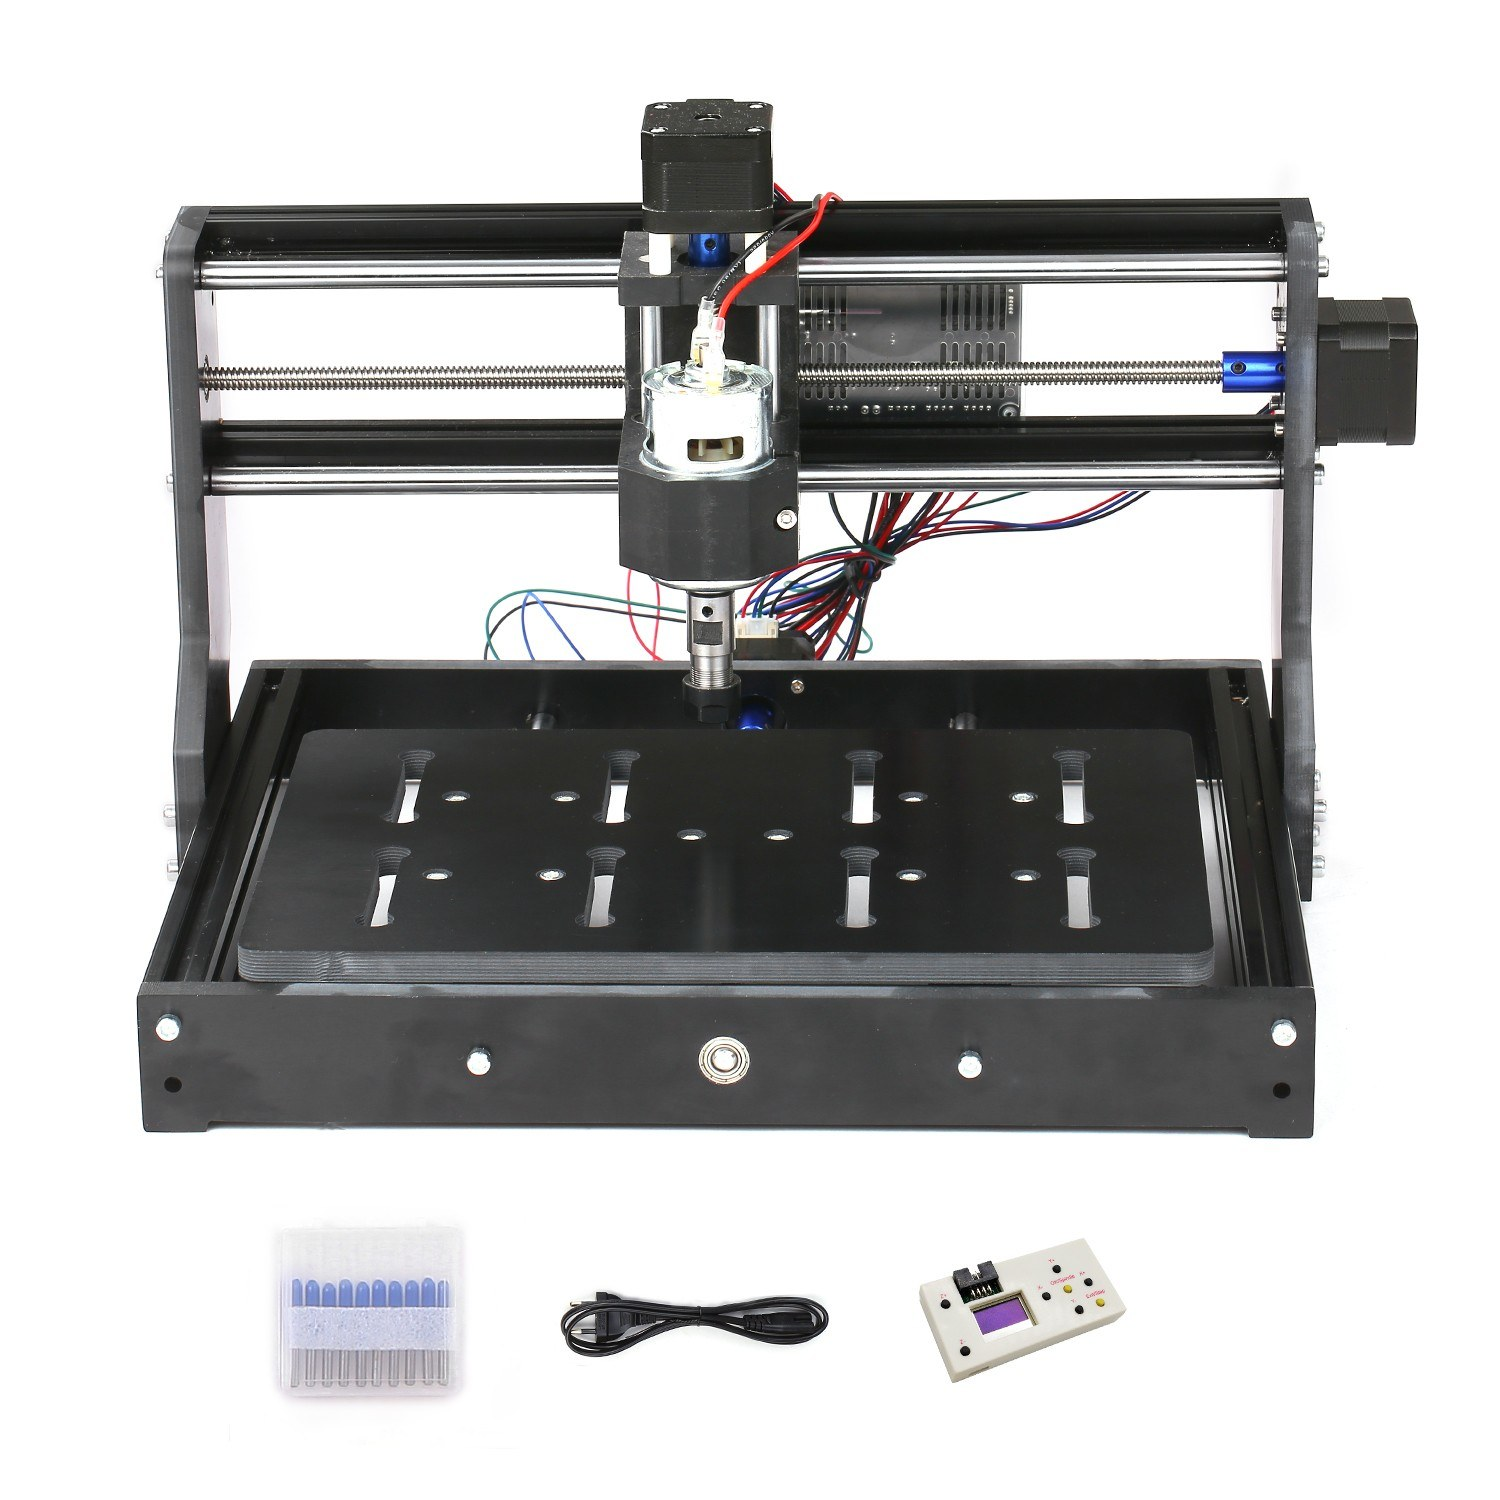 CNC3020 Mini DIY CNC Router Kit Power Milling Machine GRBL Control Laser Engraver Engraving Machine with 300x200x45mm Large Working Area ER11 Spindle Chuck 10Pcs Drill Bits Offline Controller